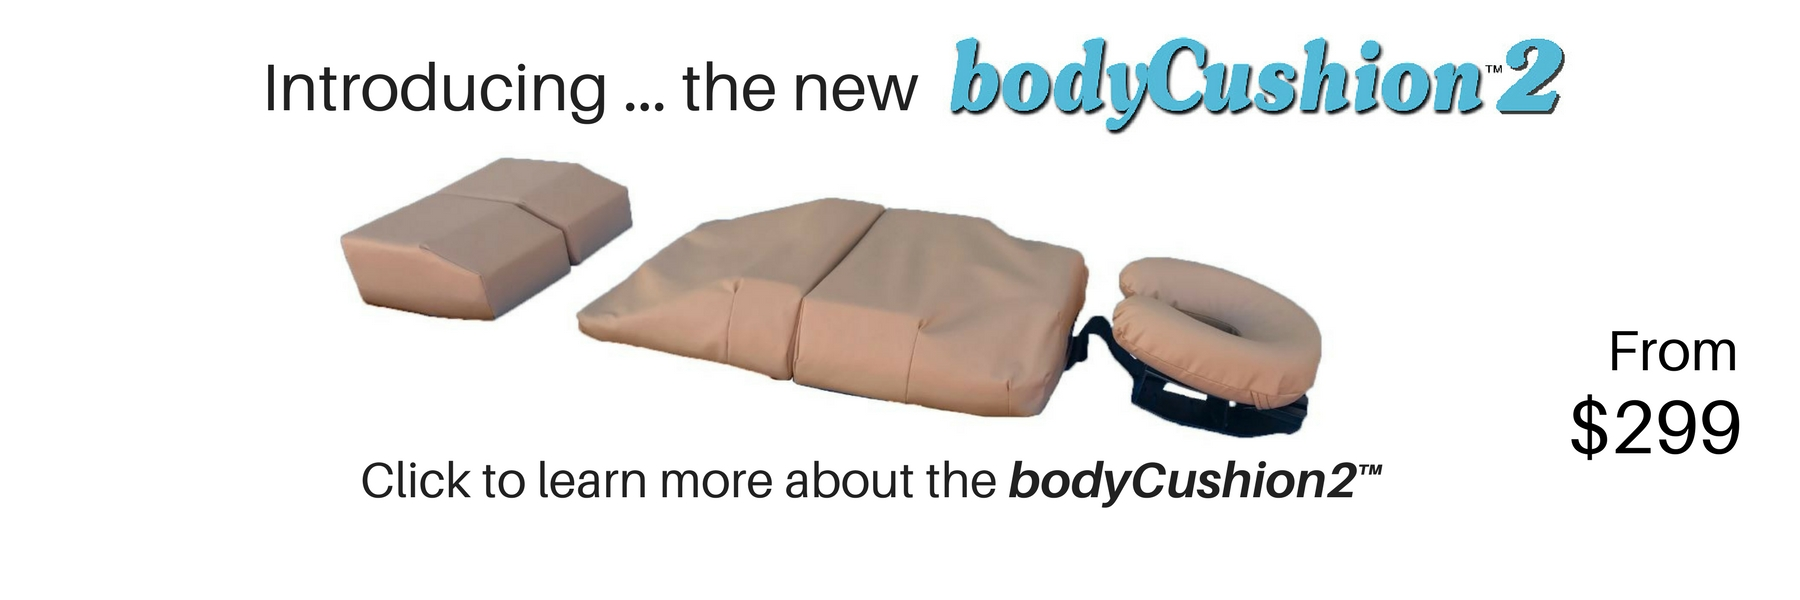 Introducing ... the new bodyCushion2. From $299. Click to learn more about the bodyCushion2